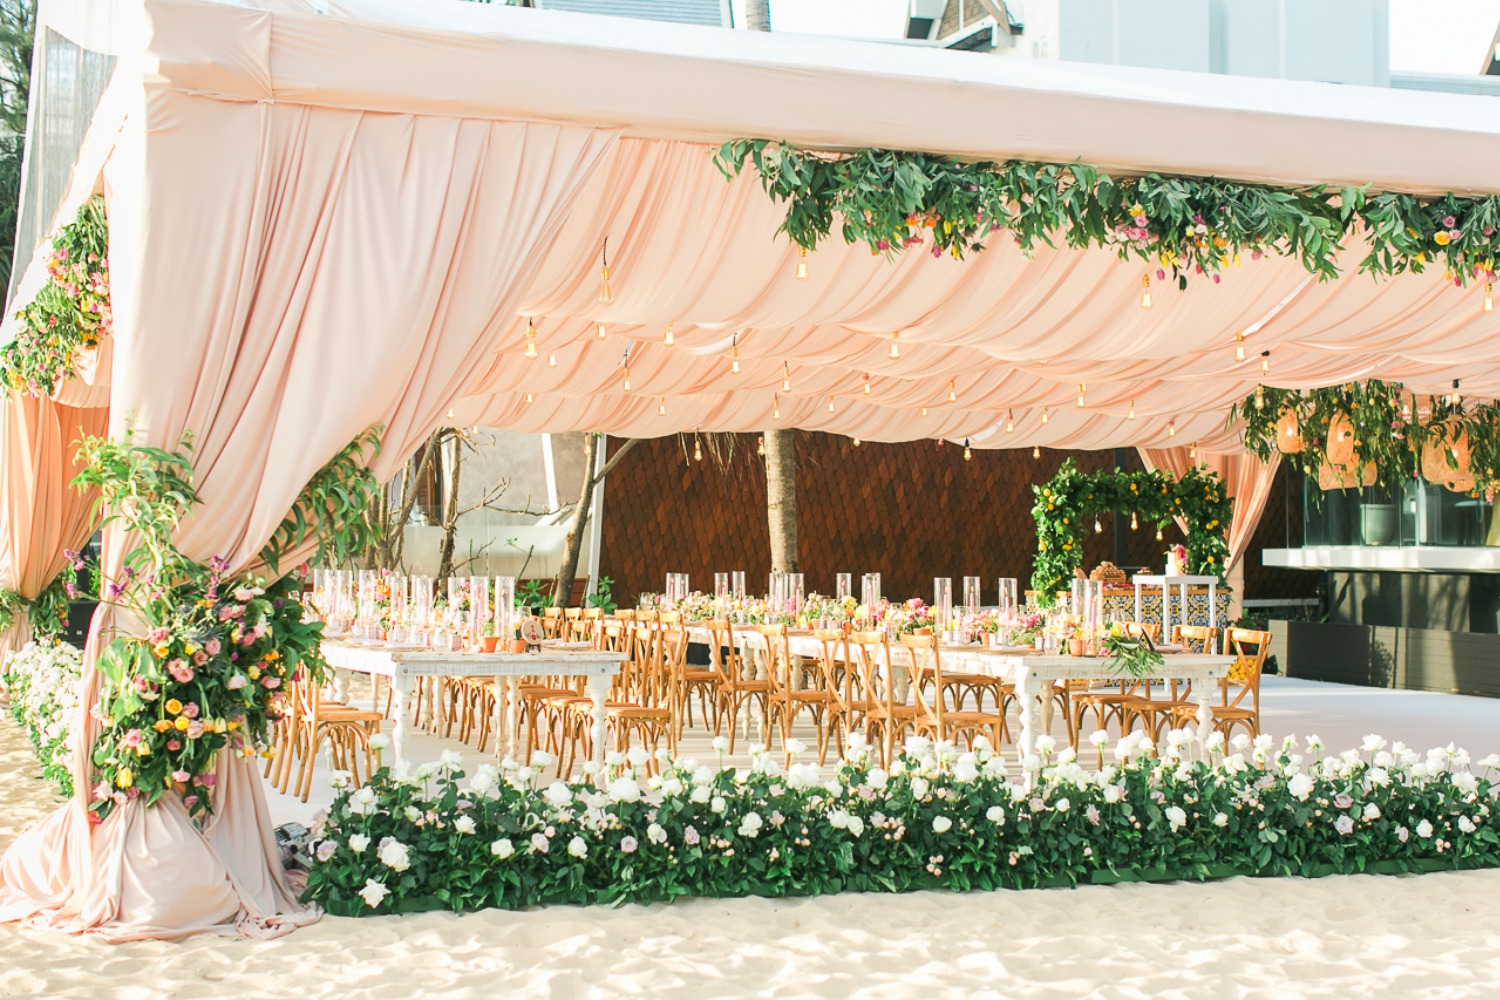 Outdoor tent reception on the beach